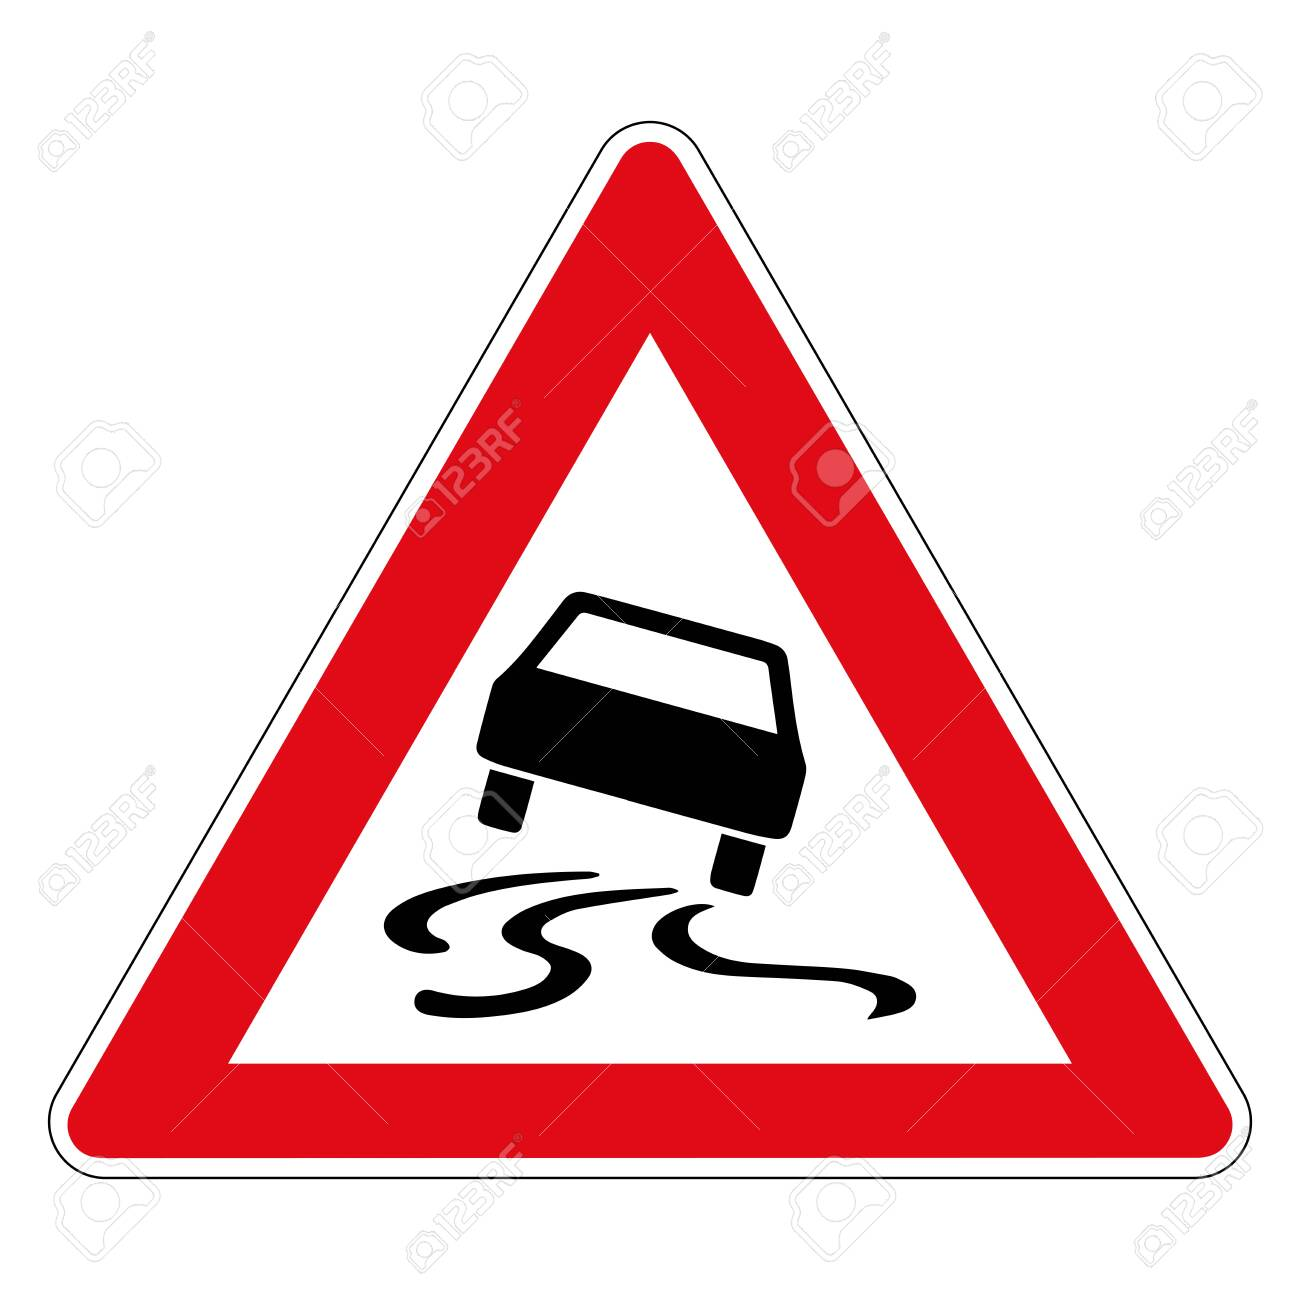 Danger of skidding or slipping due to humidity or dirt. Road sign of Germany. Vector graphics. - 139215793